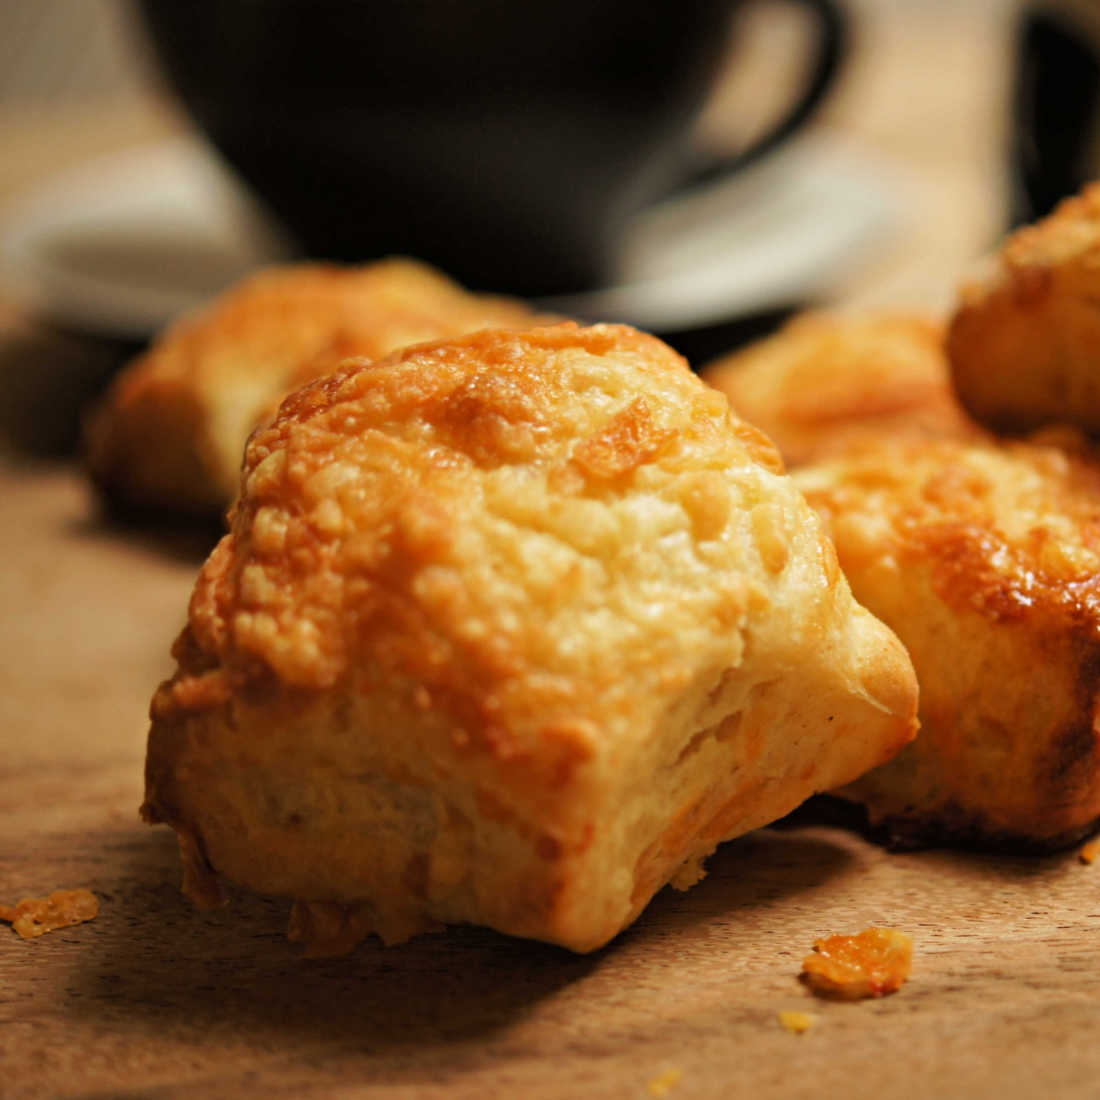 Cheese-Scones-Fathers-Day-Cheese-Low-ResHZ80rDtSbBQtV